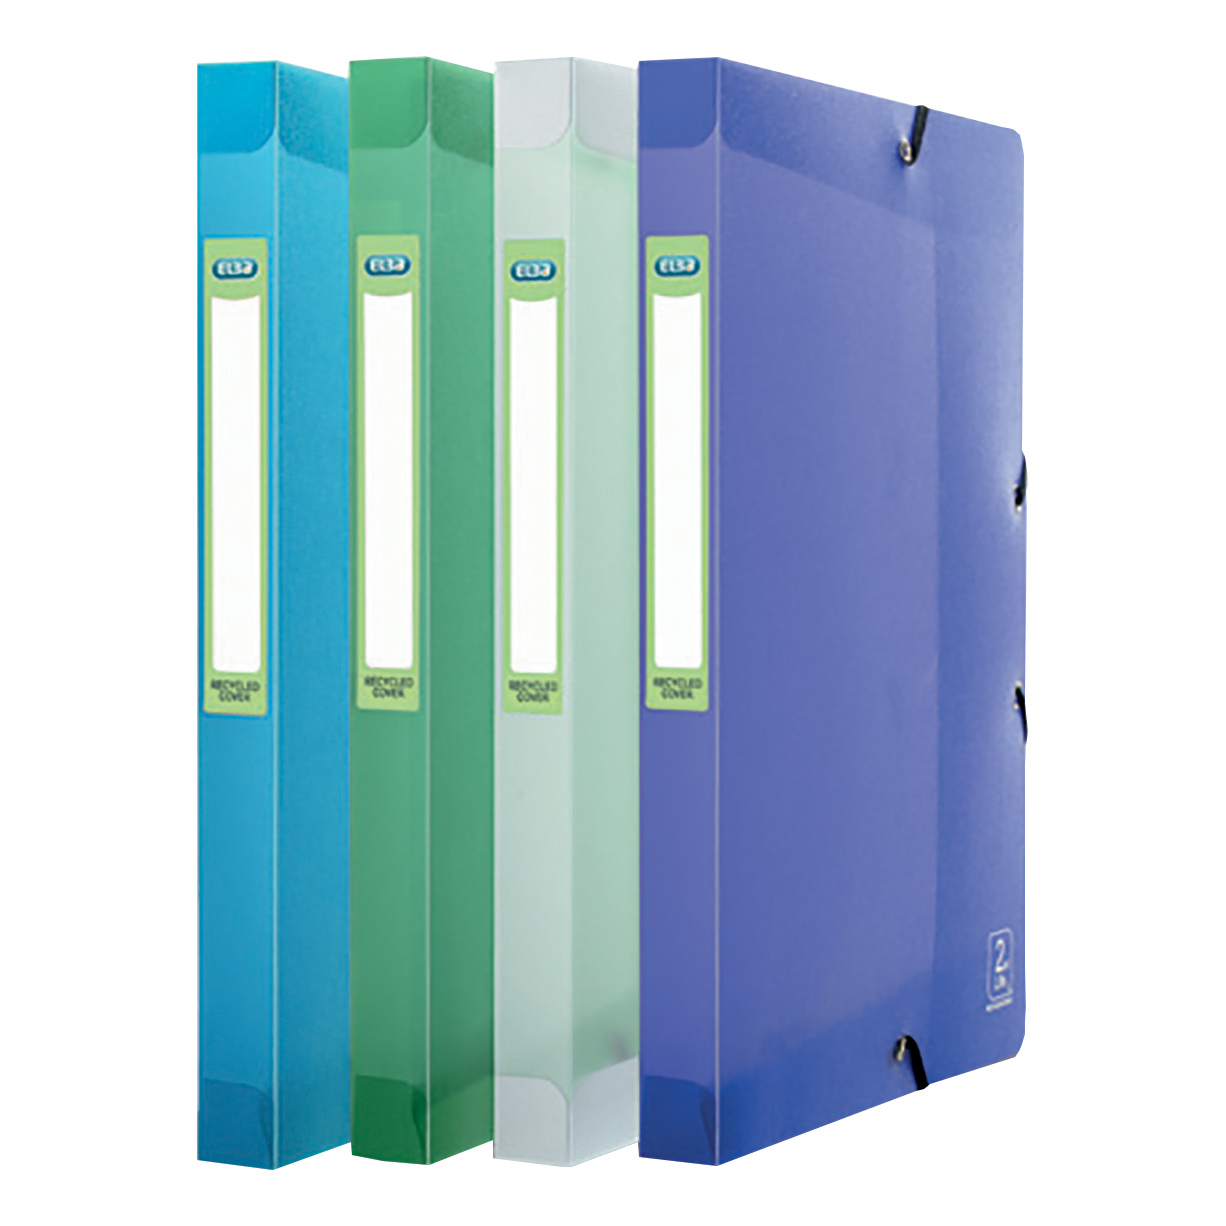 Elba 2nd Life Box File 40mm Spine Recycled Polypropylene A4 Assorted Ref 400084982 [Pack 4]